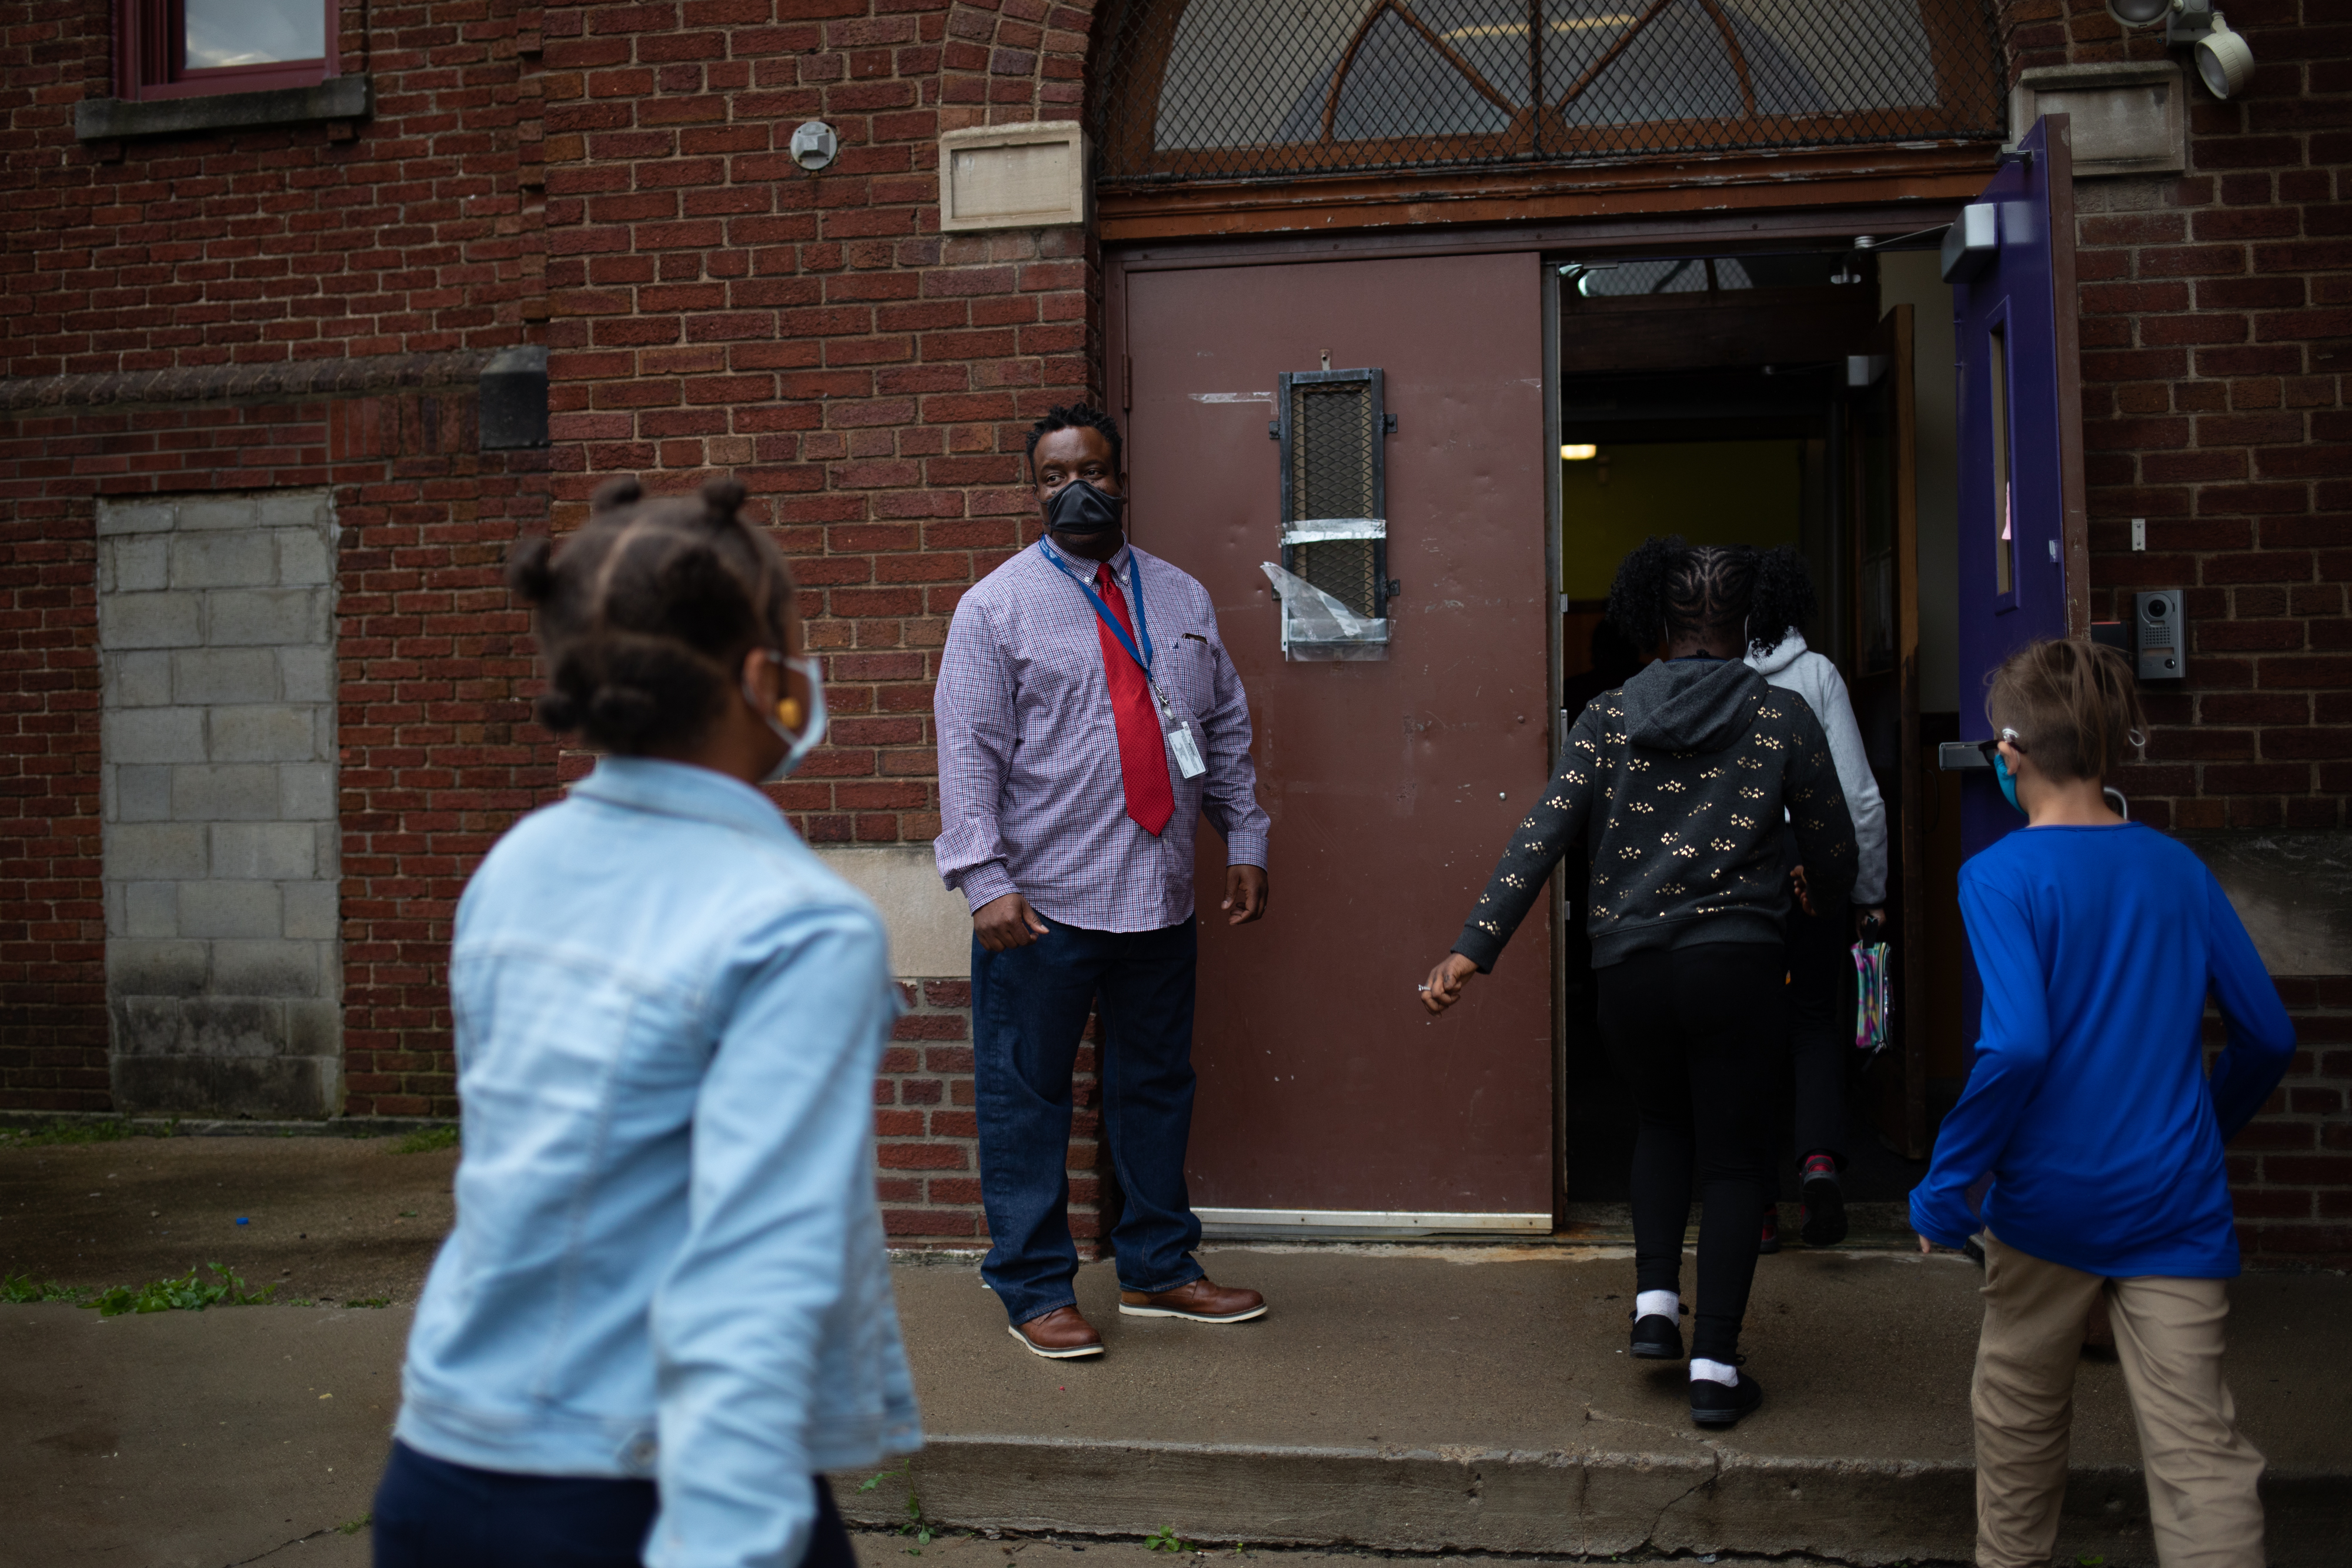 A teacher watches as students make their way into the brick facade of their school.